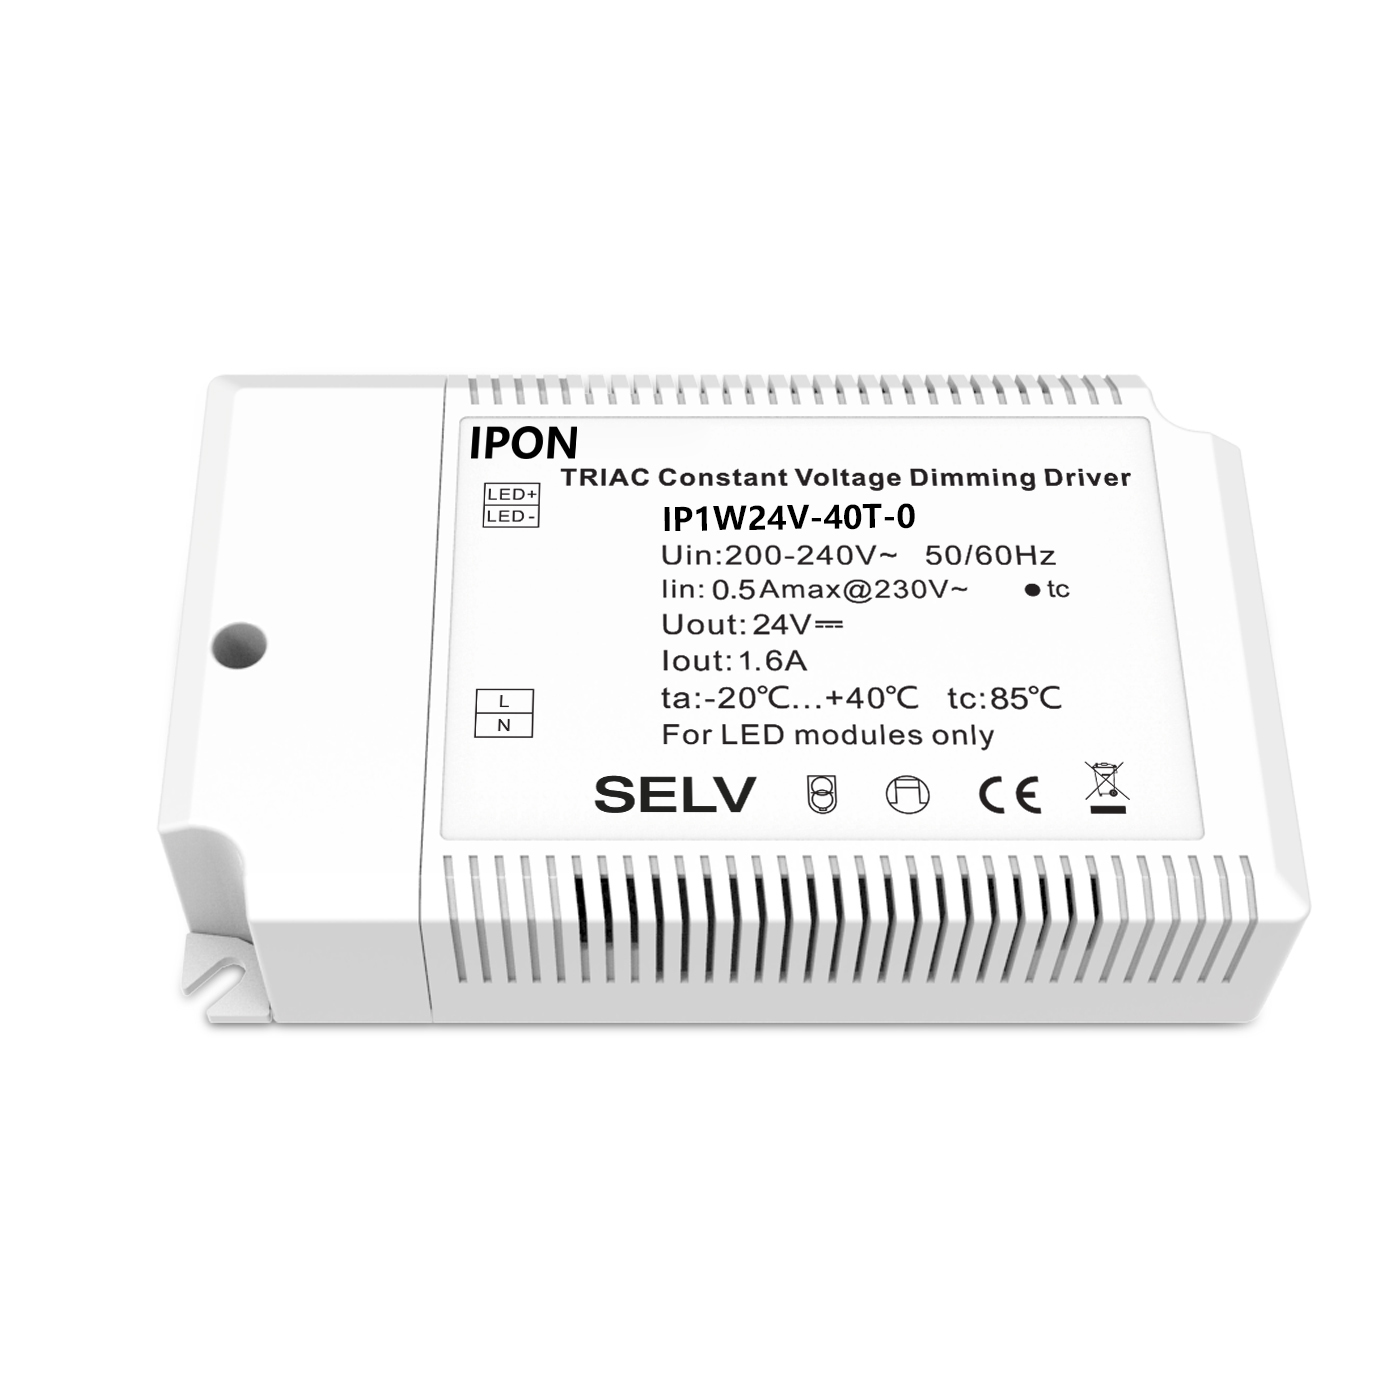 IPON LED Array image122